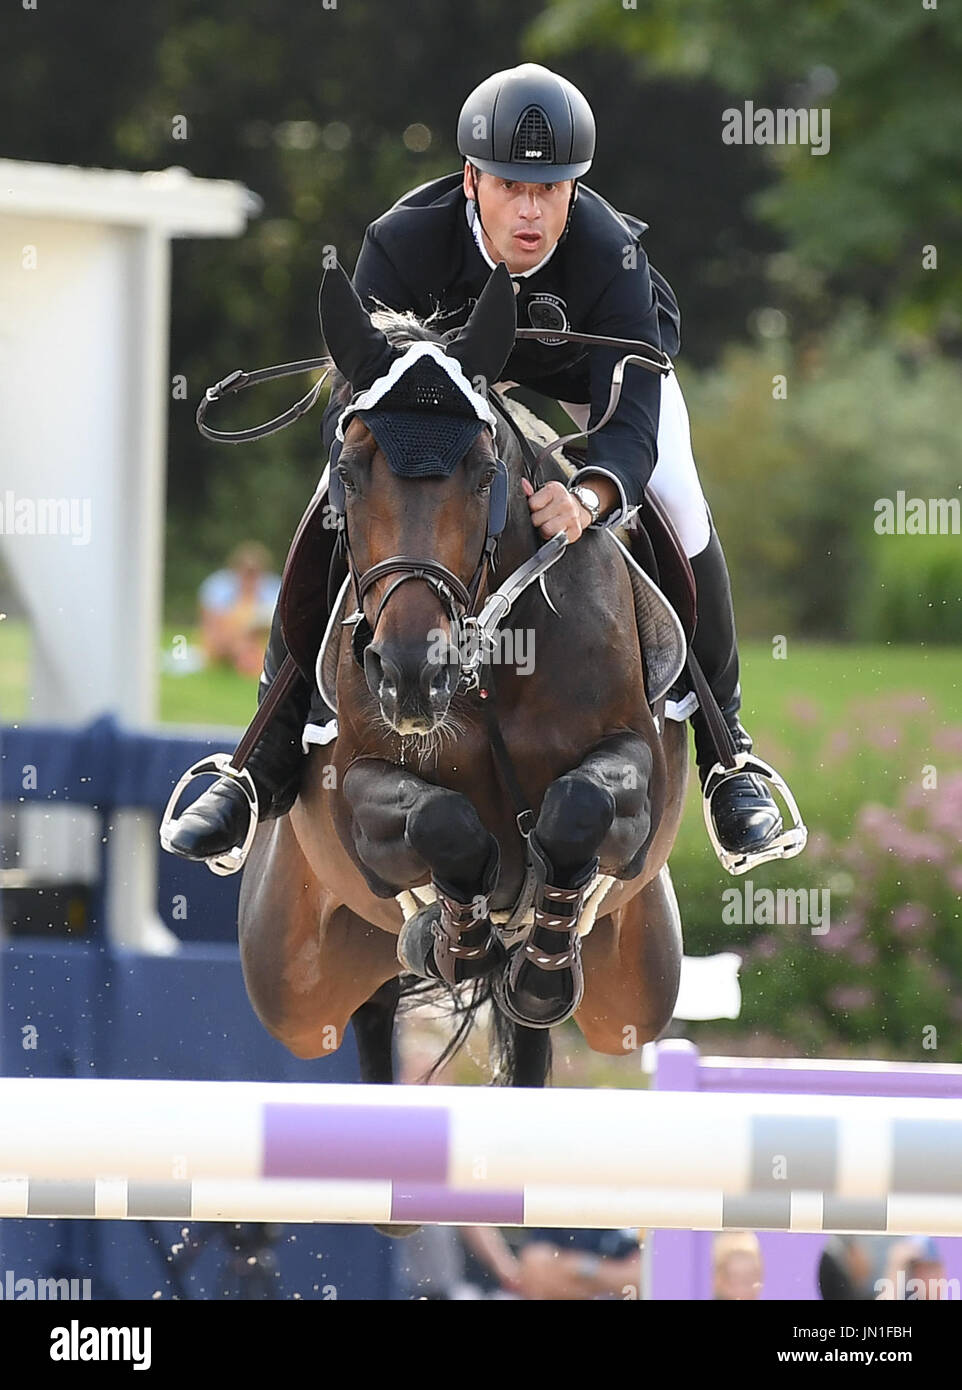 Berlin, Germany. 28th July, 2017. Show jumper Leopold van Asten in action on his horse Miss Untouchable during the AG-DVAG sponsored event at the Global Champions Tour in Berlin, Germany, 28 July 2017. This year's show jumping competition opened on the 28 July and will run through to the 30 July 2017. Photo: Britta Pedersen/dpa-Zentralbild/ZB/dpa/Alamy Live News - Stock Image